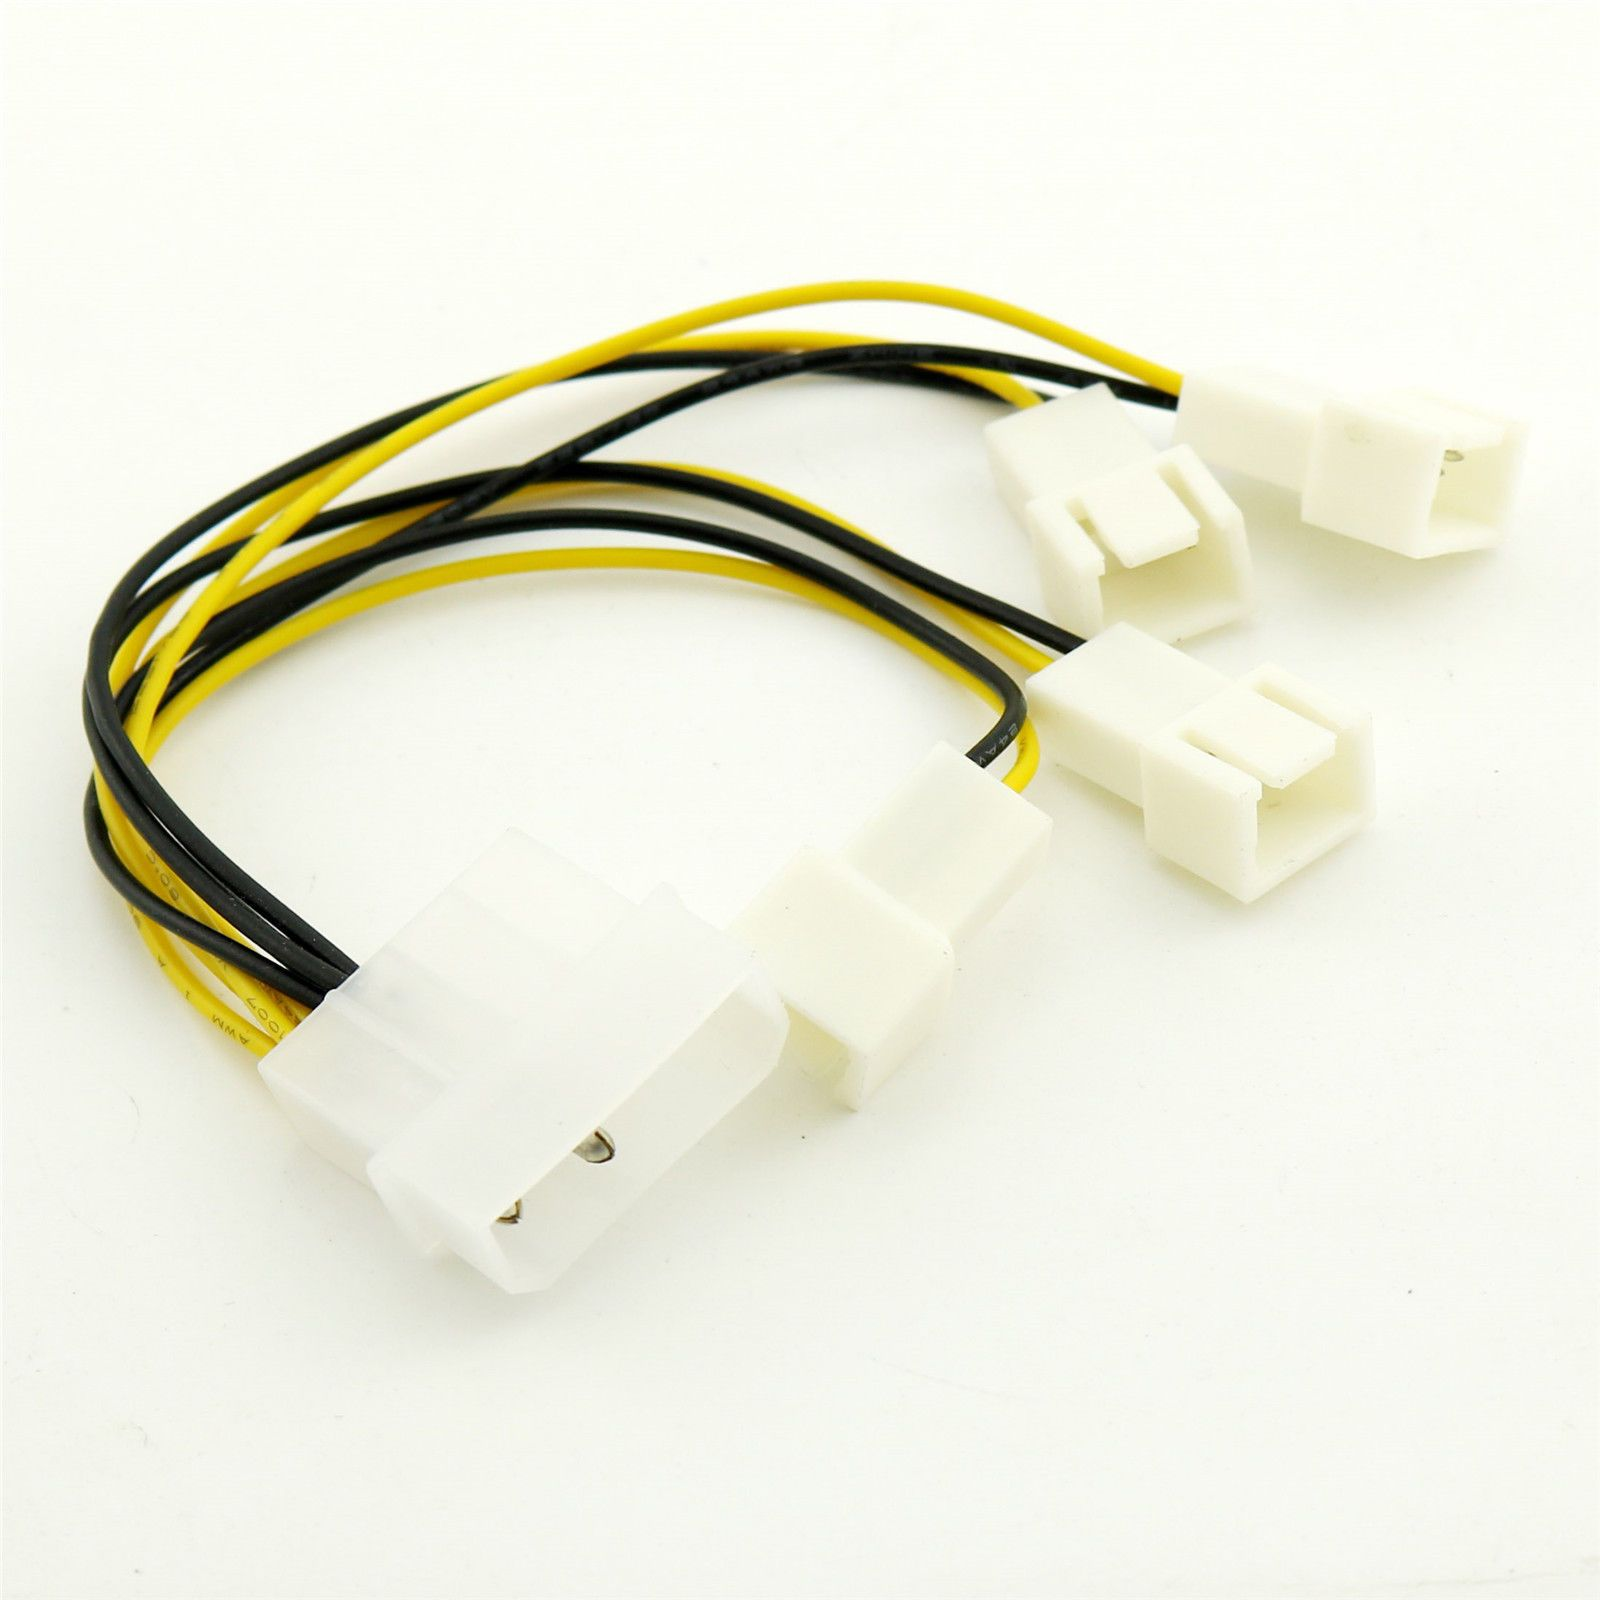 medium resolution of  1 39 1pc molex male to 4 way 3 pin computer power multi fan splitter adapter